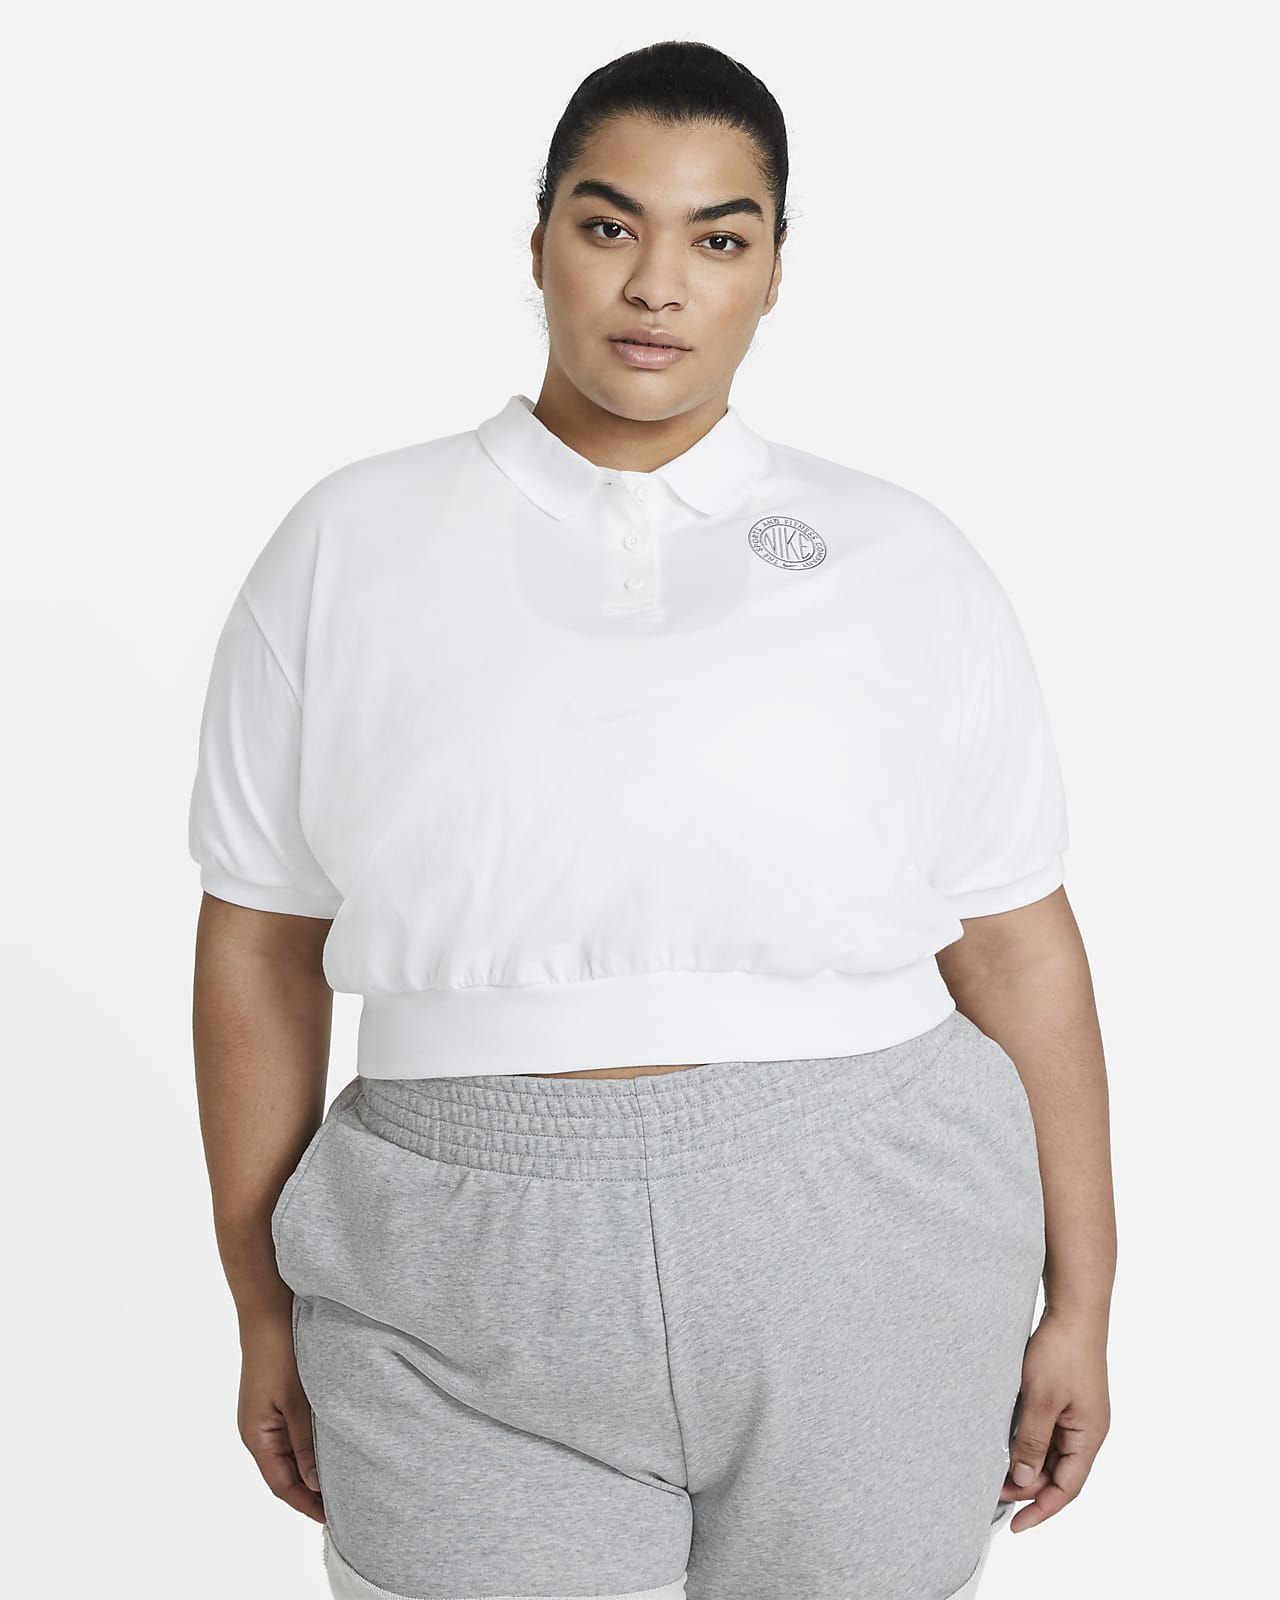 Nike Sportswear Femme Women's Crop-Top (Plus Size)